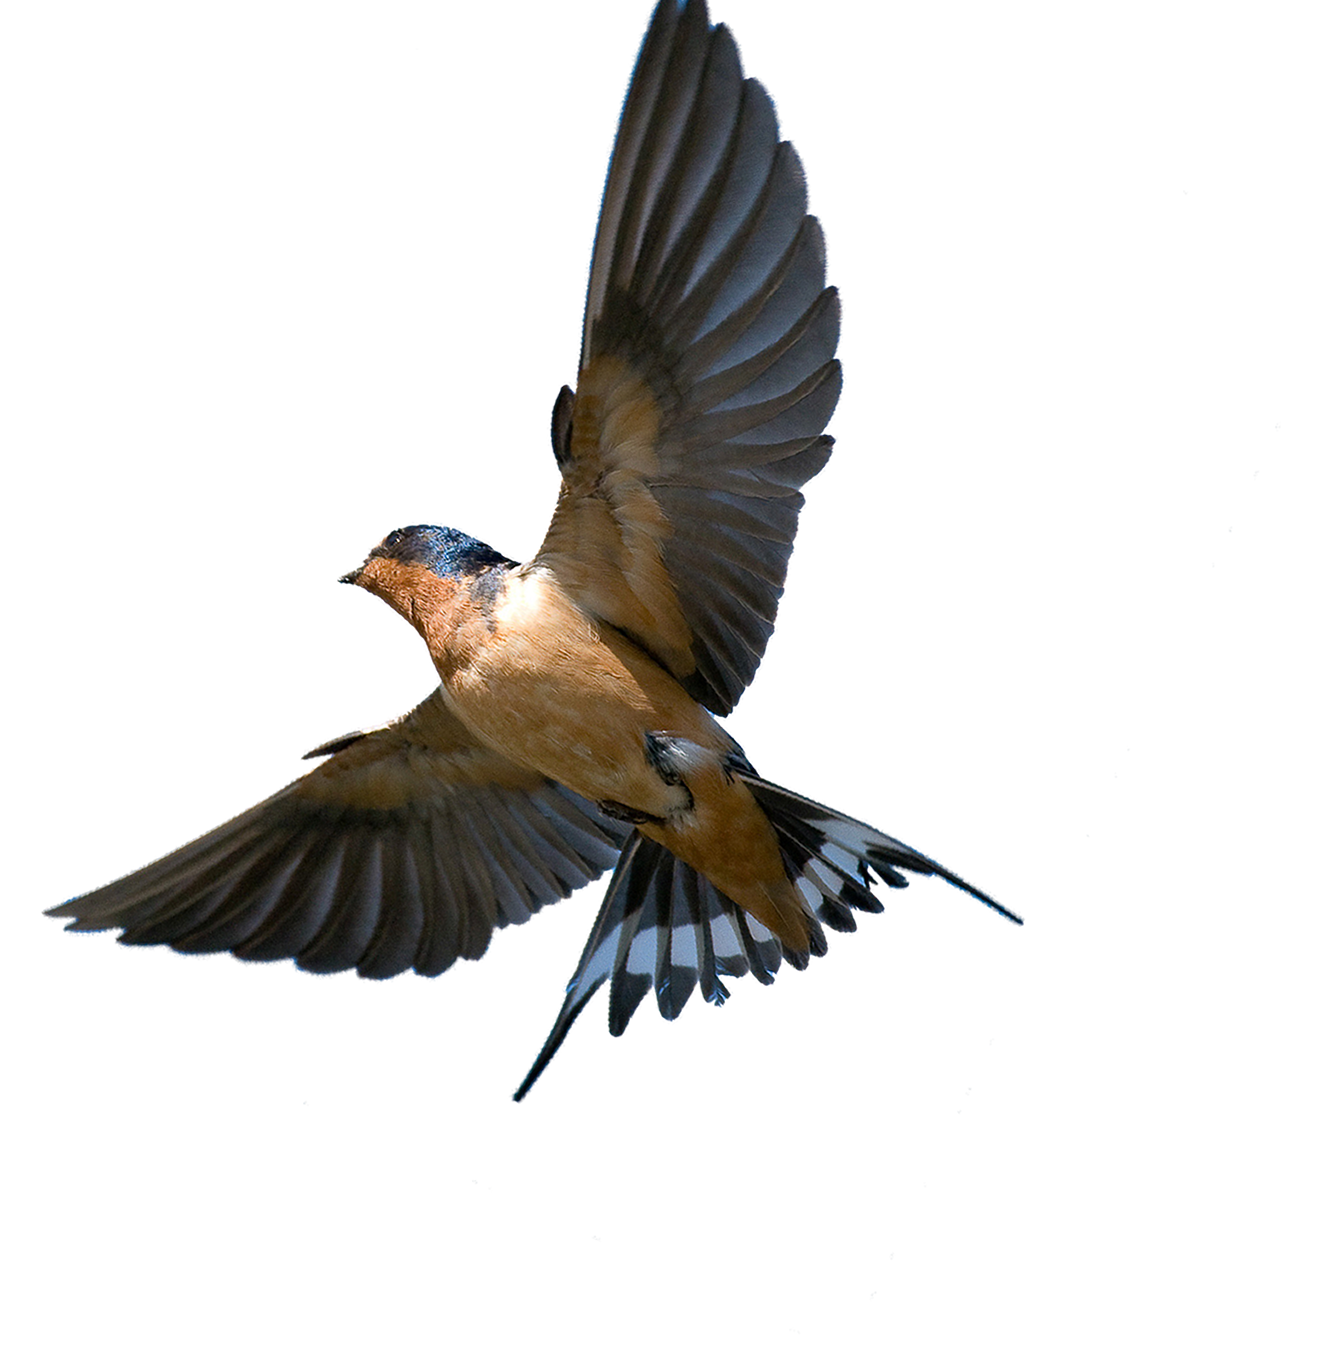 Southern Flying Tree Rough-Winged Swallow Bird Barn PNG Image